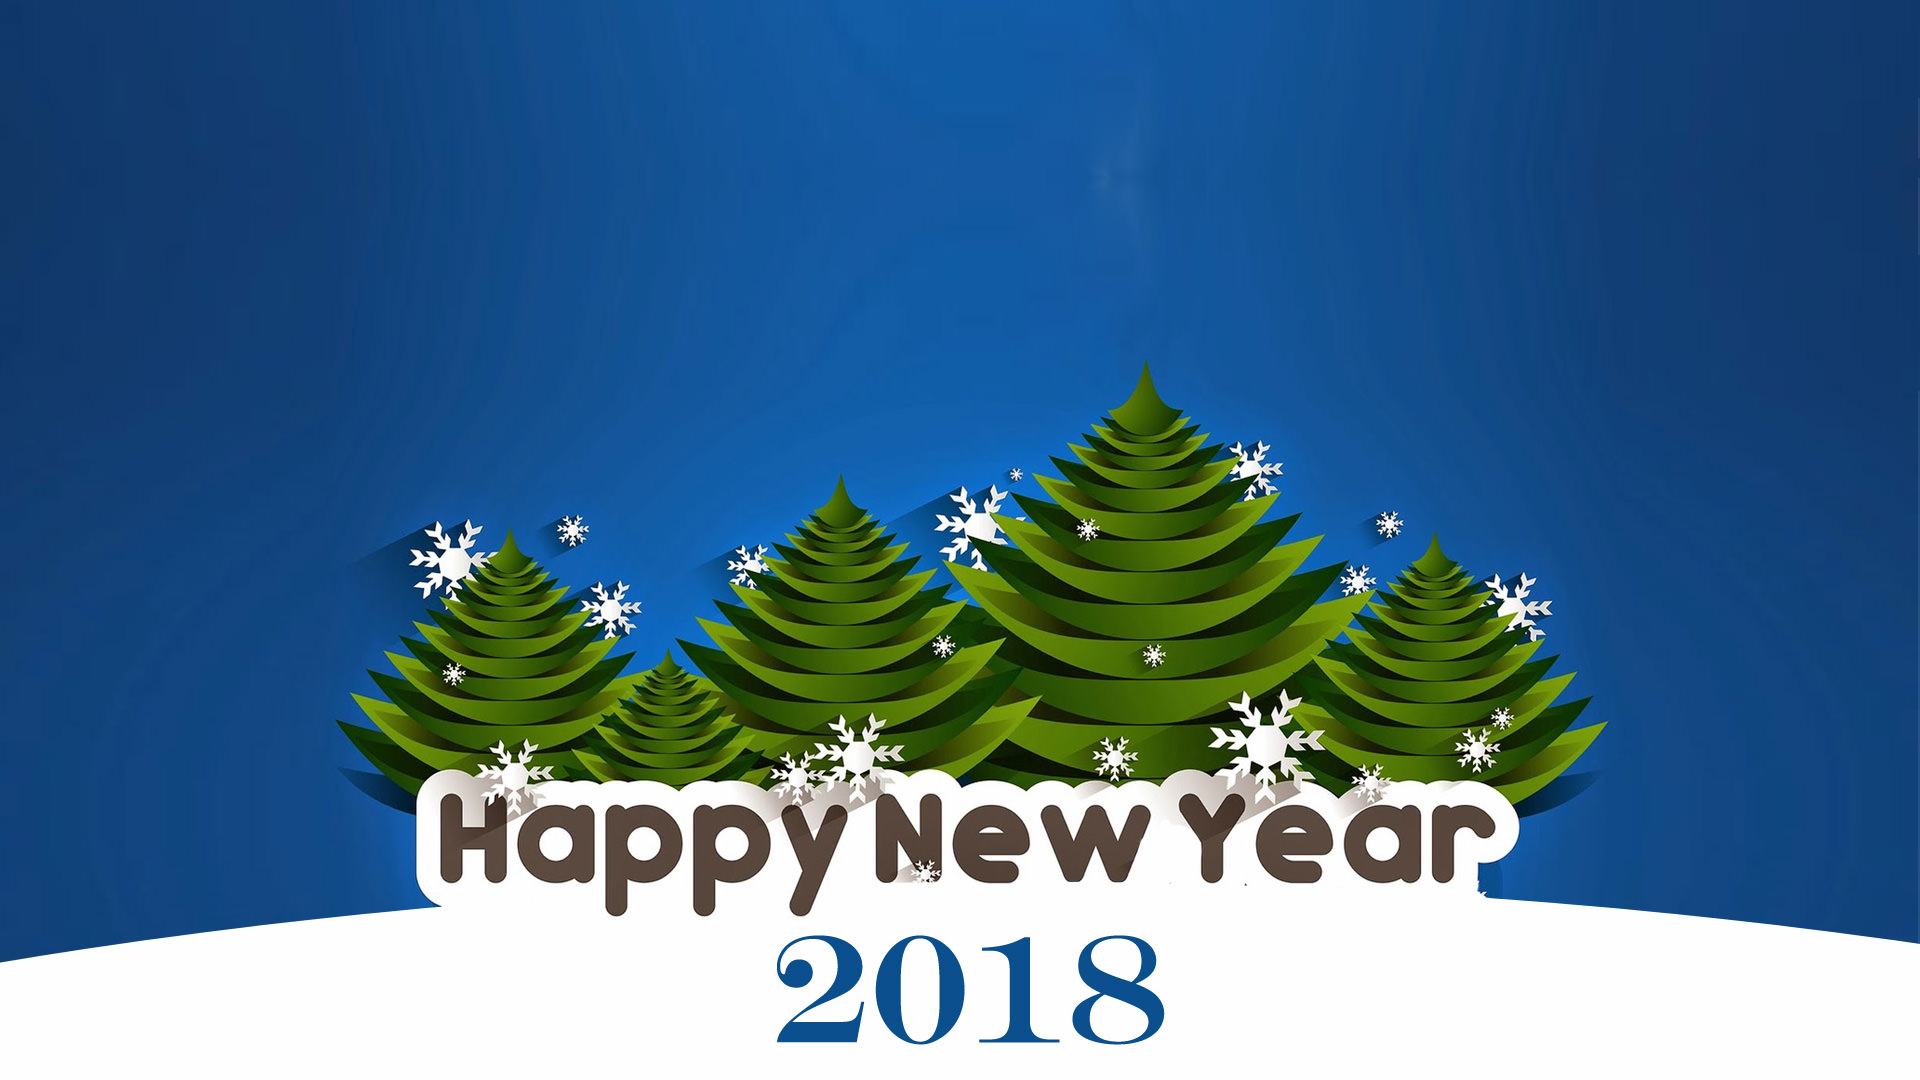 awesome happy new year 2018 wallpaper